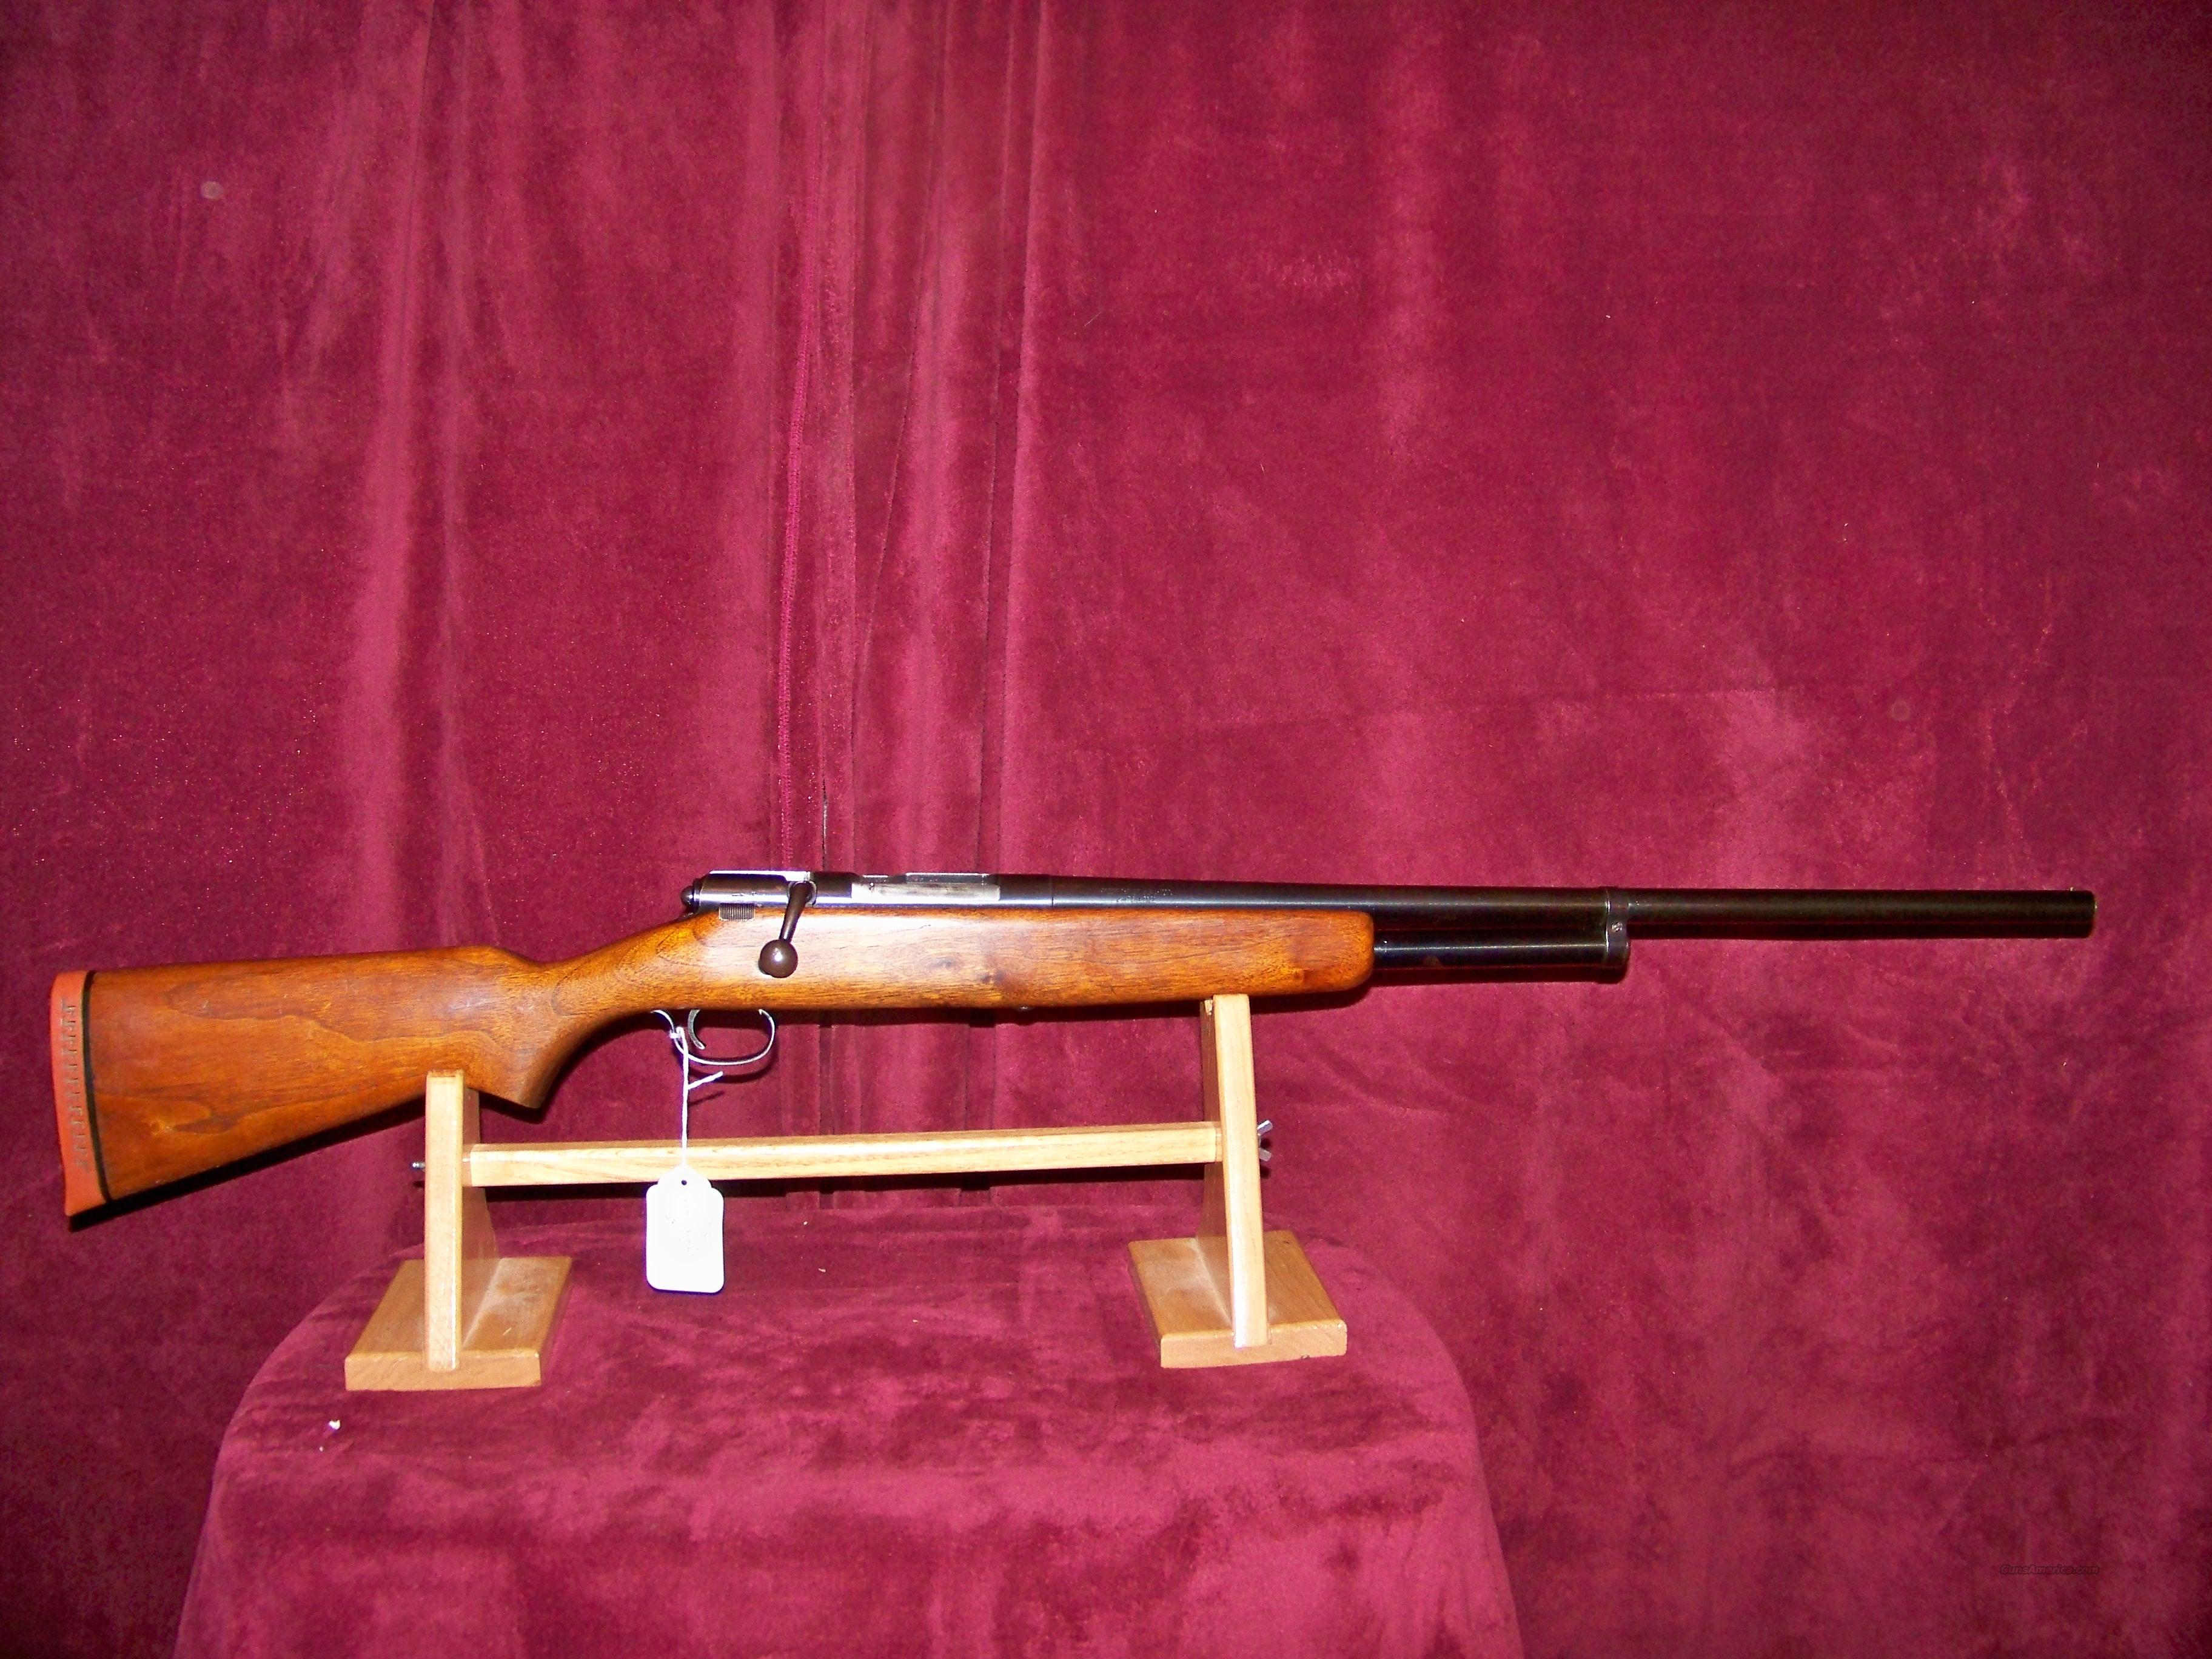 J.C. HIGGINS MODEL 583.18 16GA  Guns > Shotguns > JC Higgins Shotguns